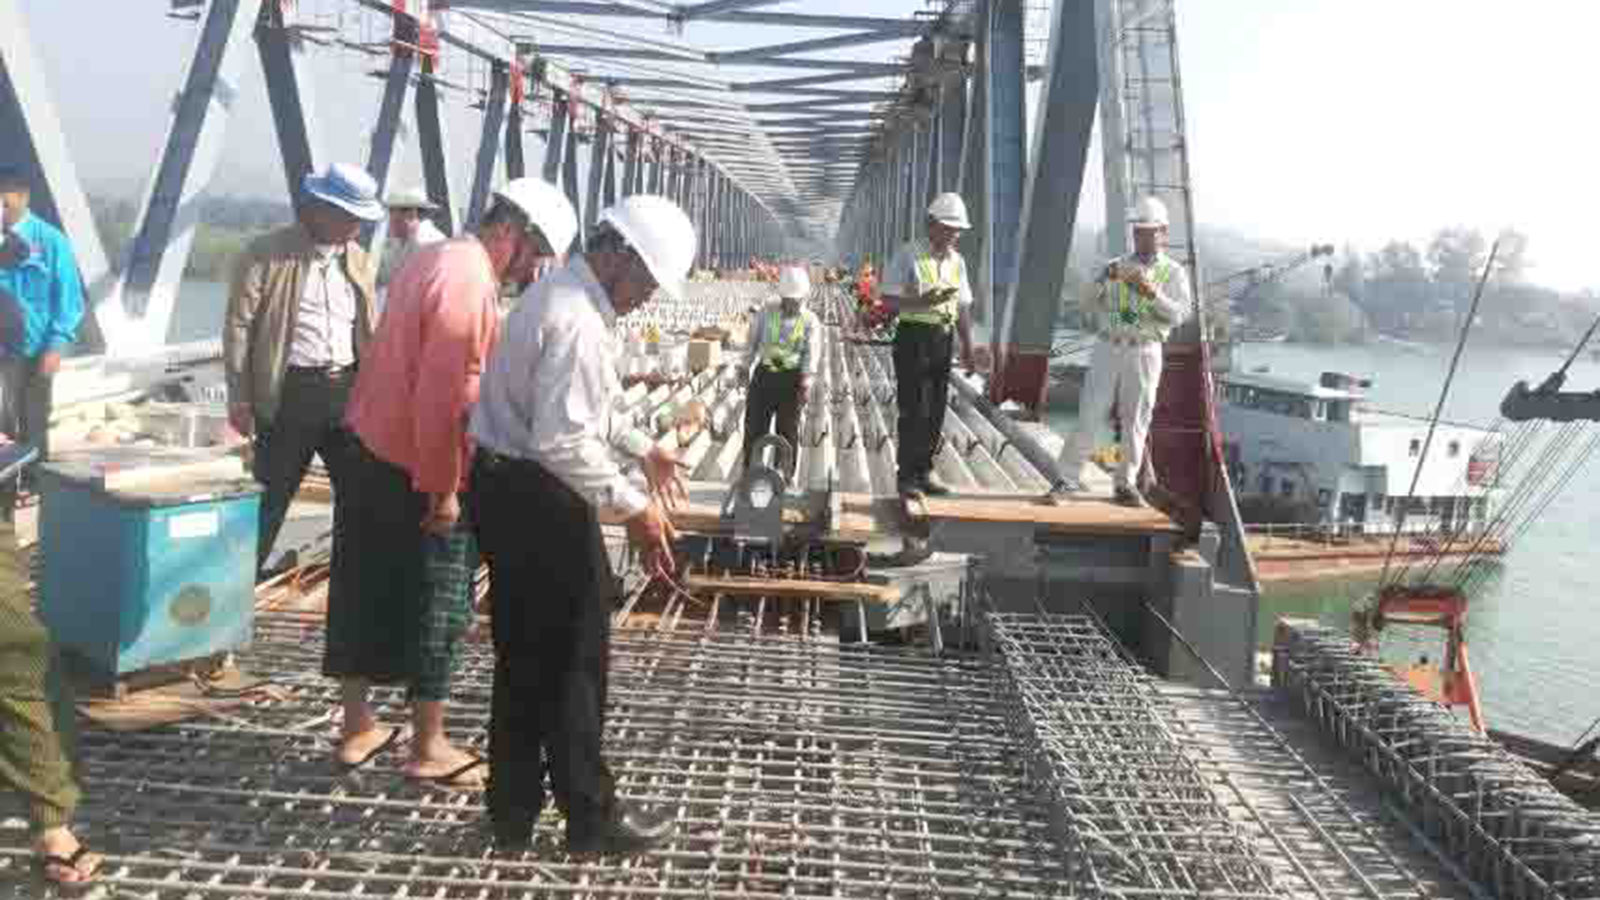 Rakhine State Chief Minister U Nyi Pu, Minister for  Electricity, Industry, Roads and Transport U Aung Kyaw Zan and district and township level officials inspecting the construction of Kinchaung bridge in Kyaukpyu, Rakhine State yesterday.Photo: MNA